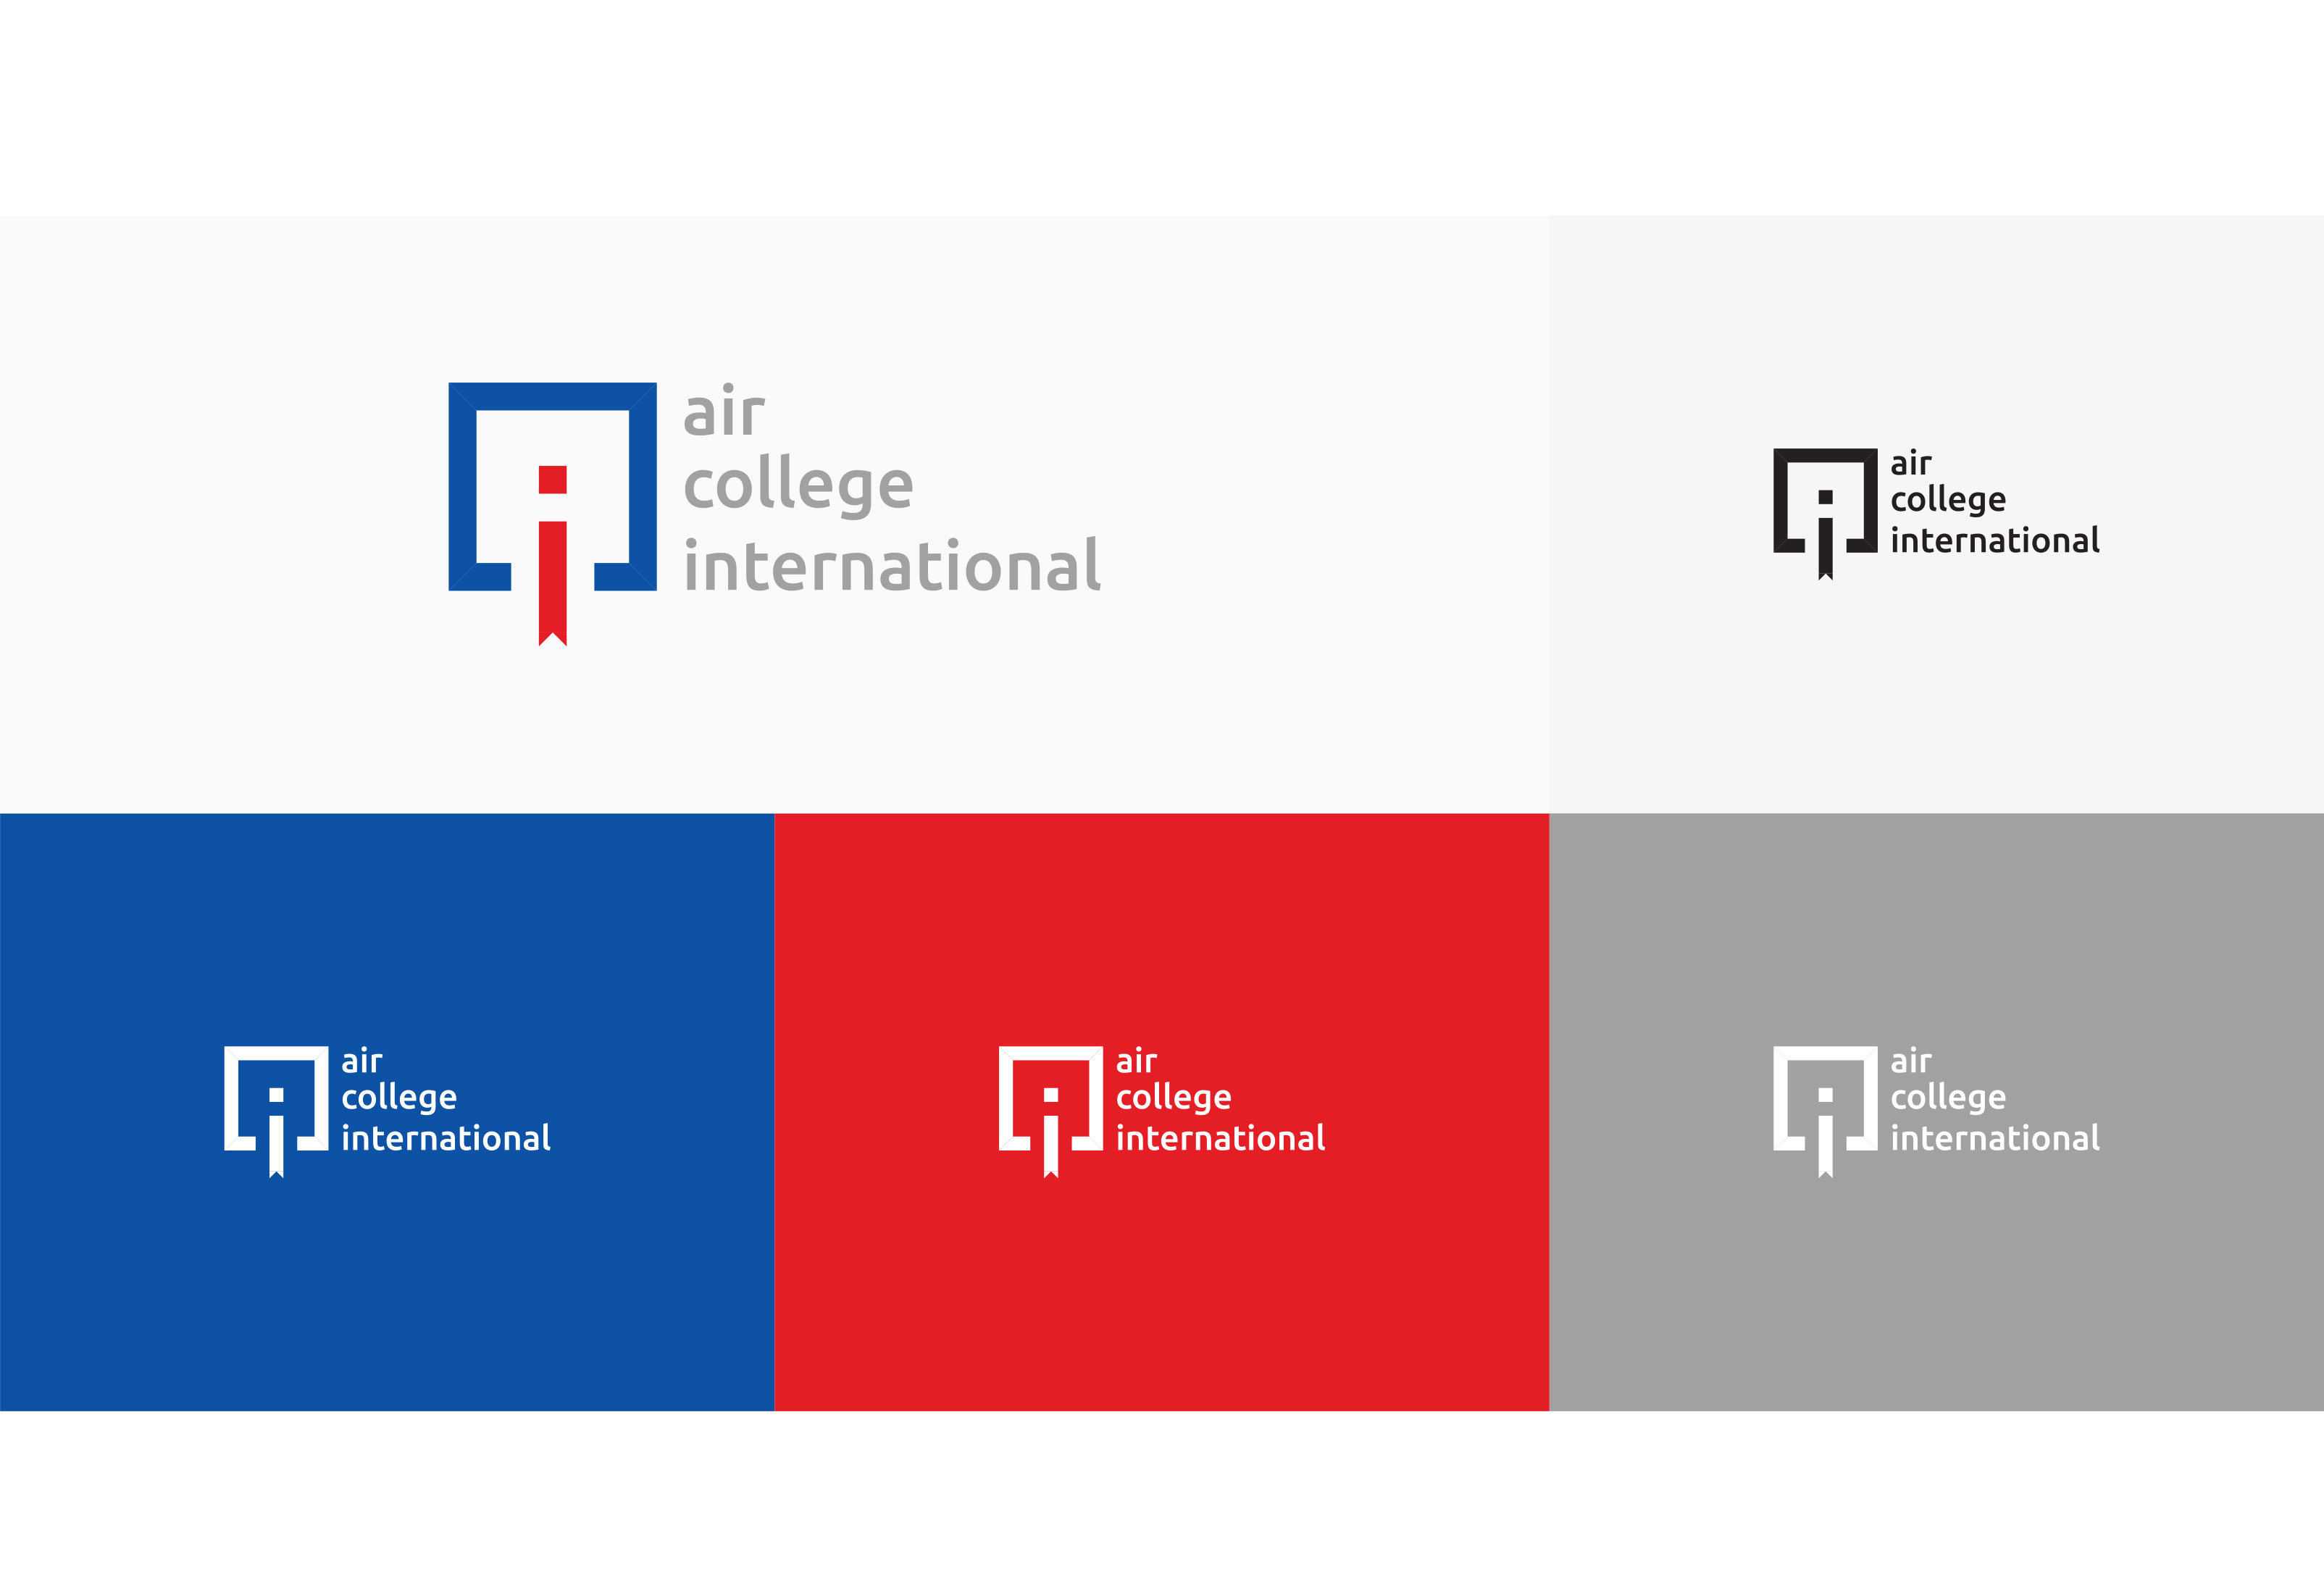 Air College International - Variations